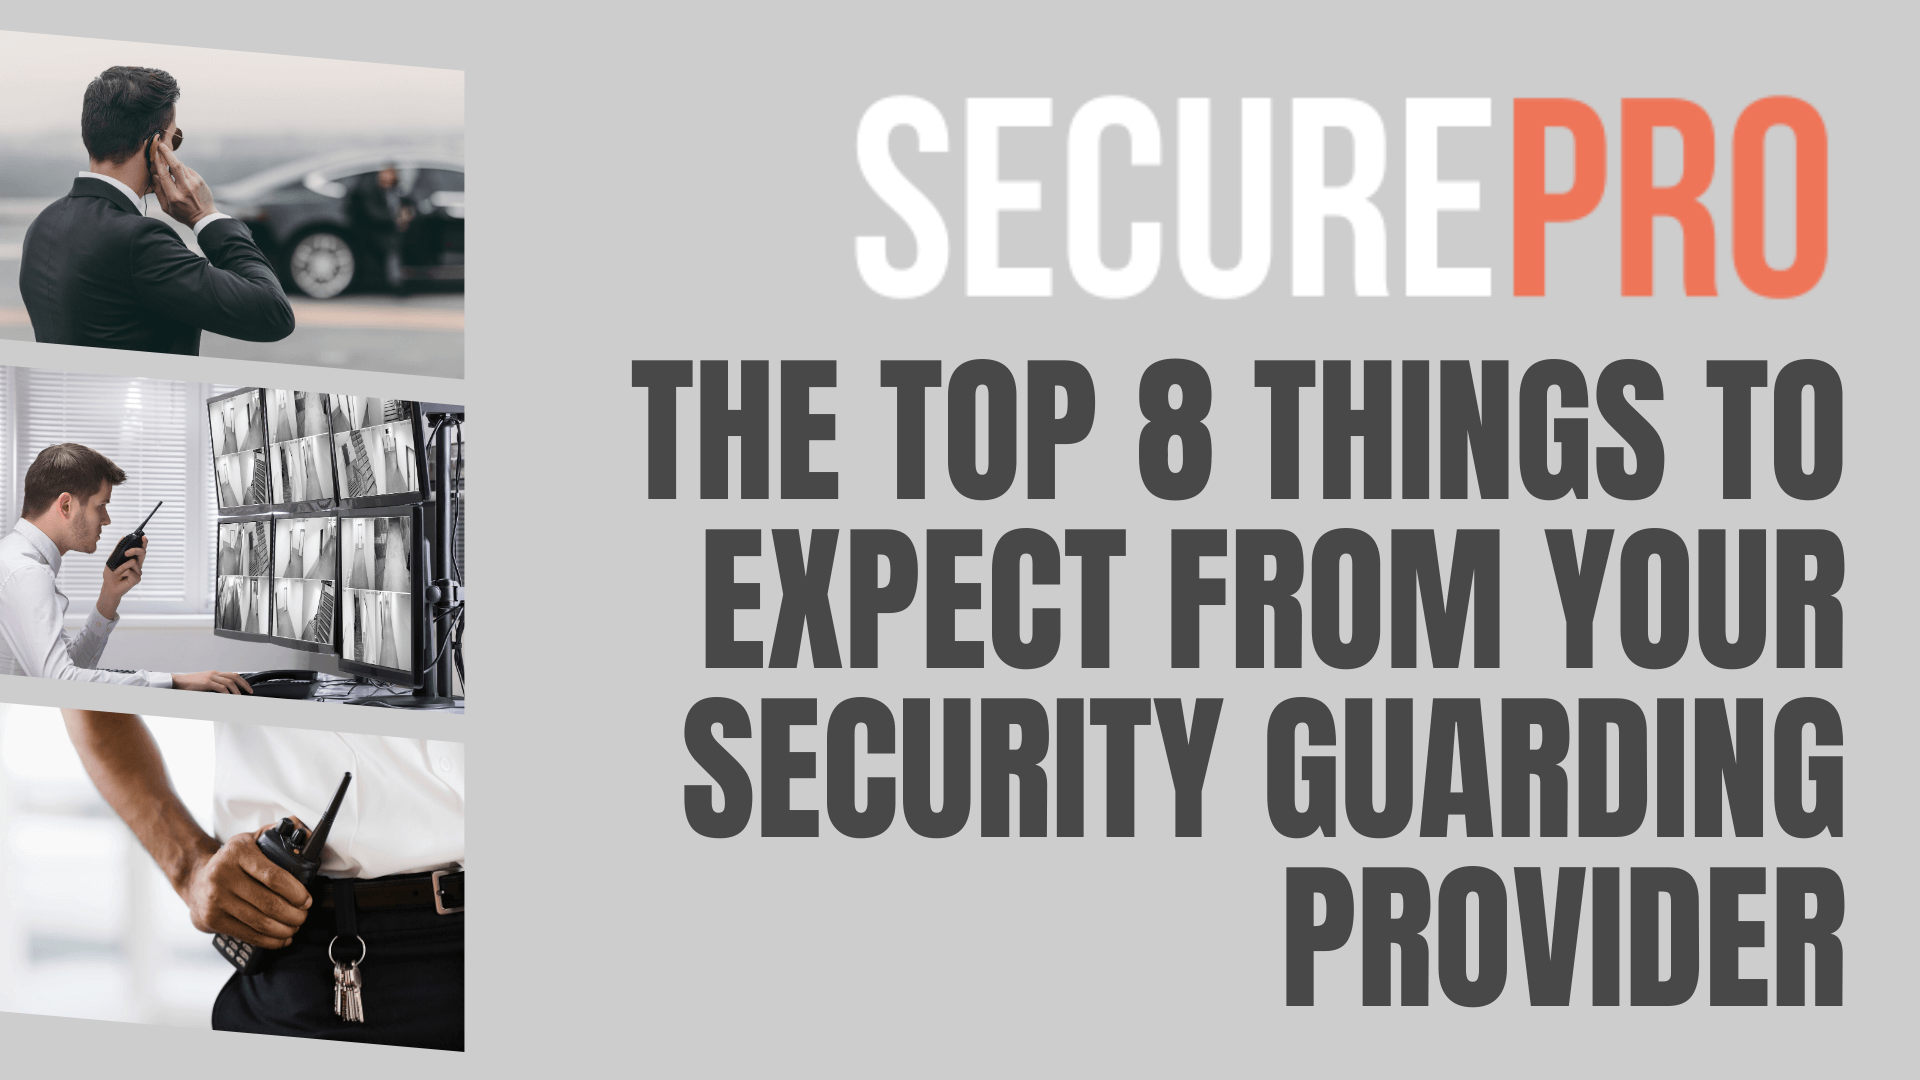 Security Services in Birmingham and the West Midlands